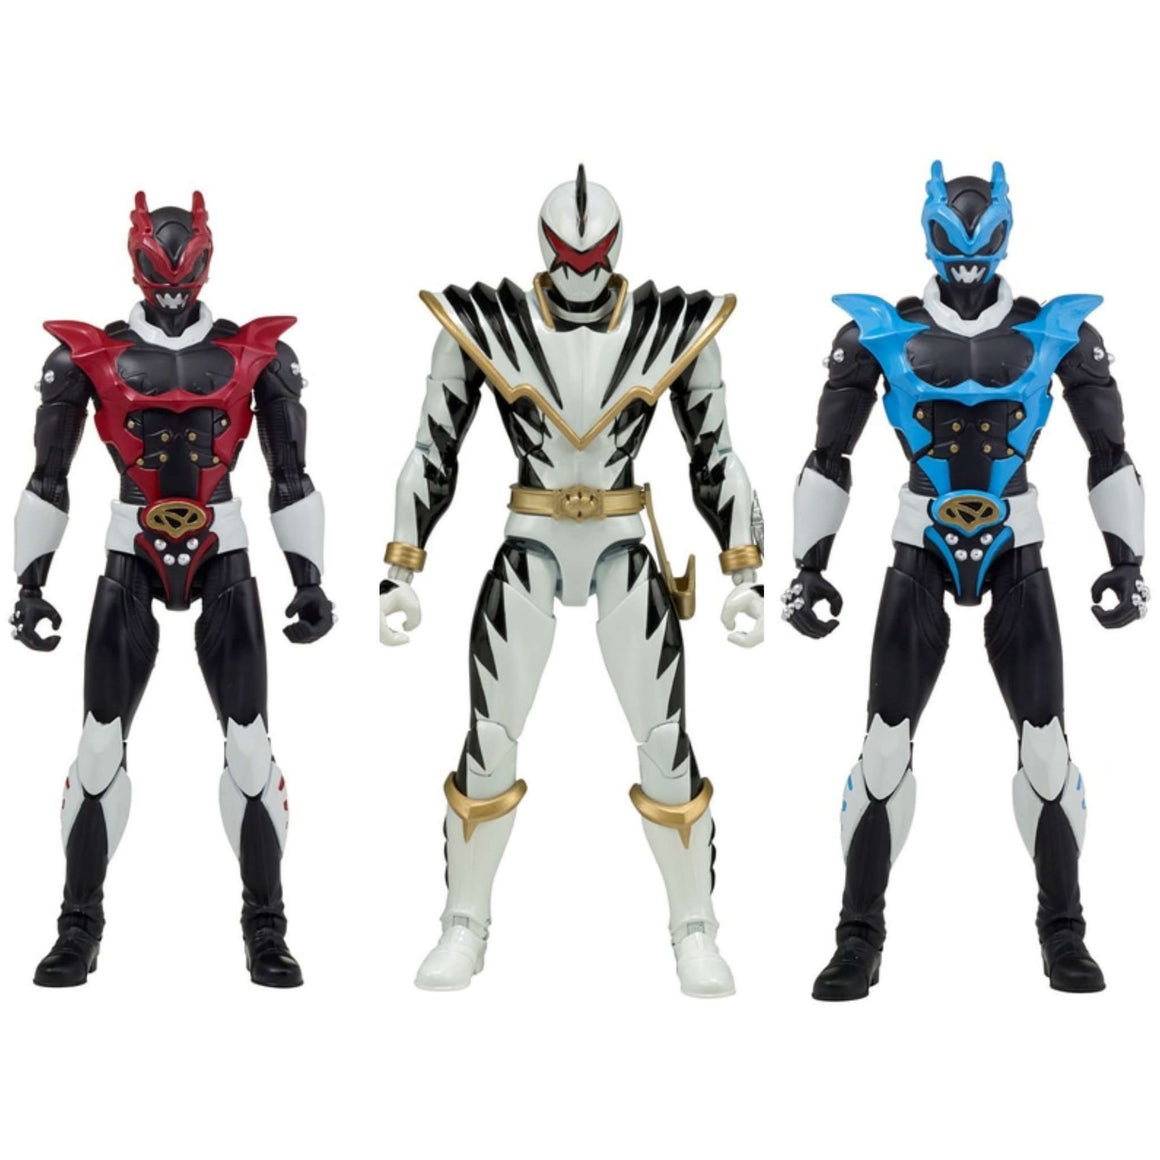 "Power Rangers Legacy 6"" Wave 7 Set of 3 Figures"